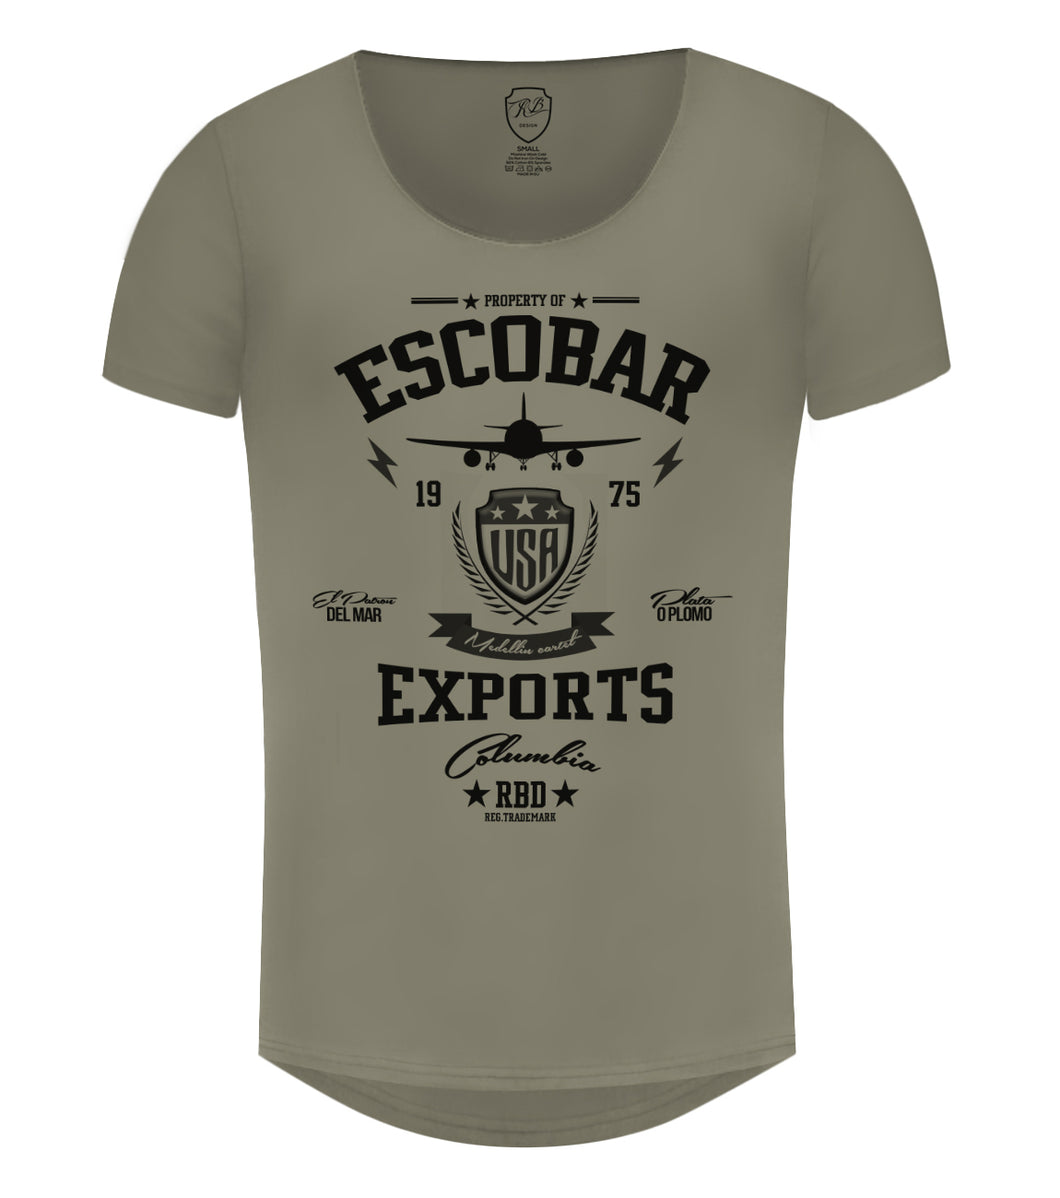 2f376439 Pablo Escobar Exports T-shirts - Medellin Cartel Inspired Stylish ...